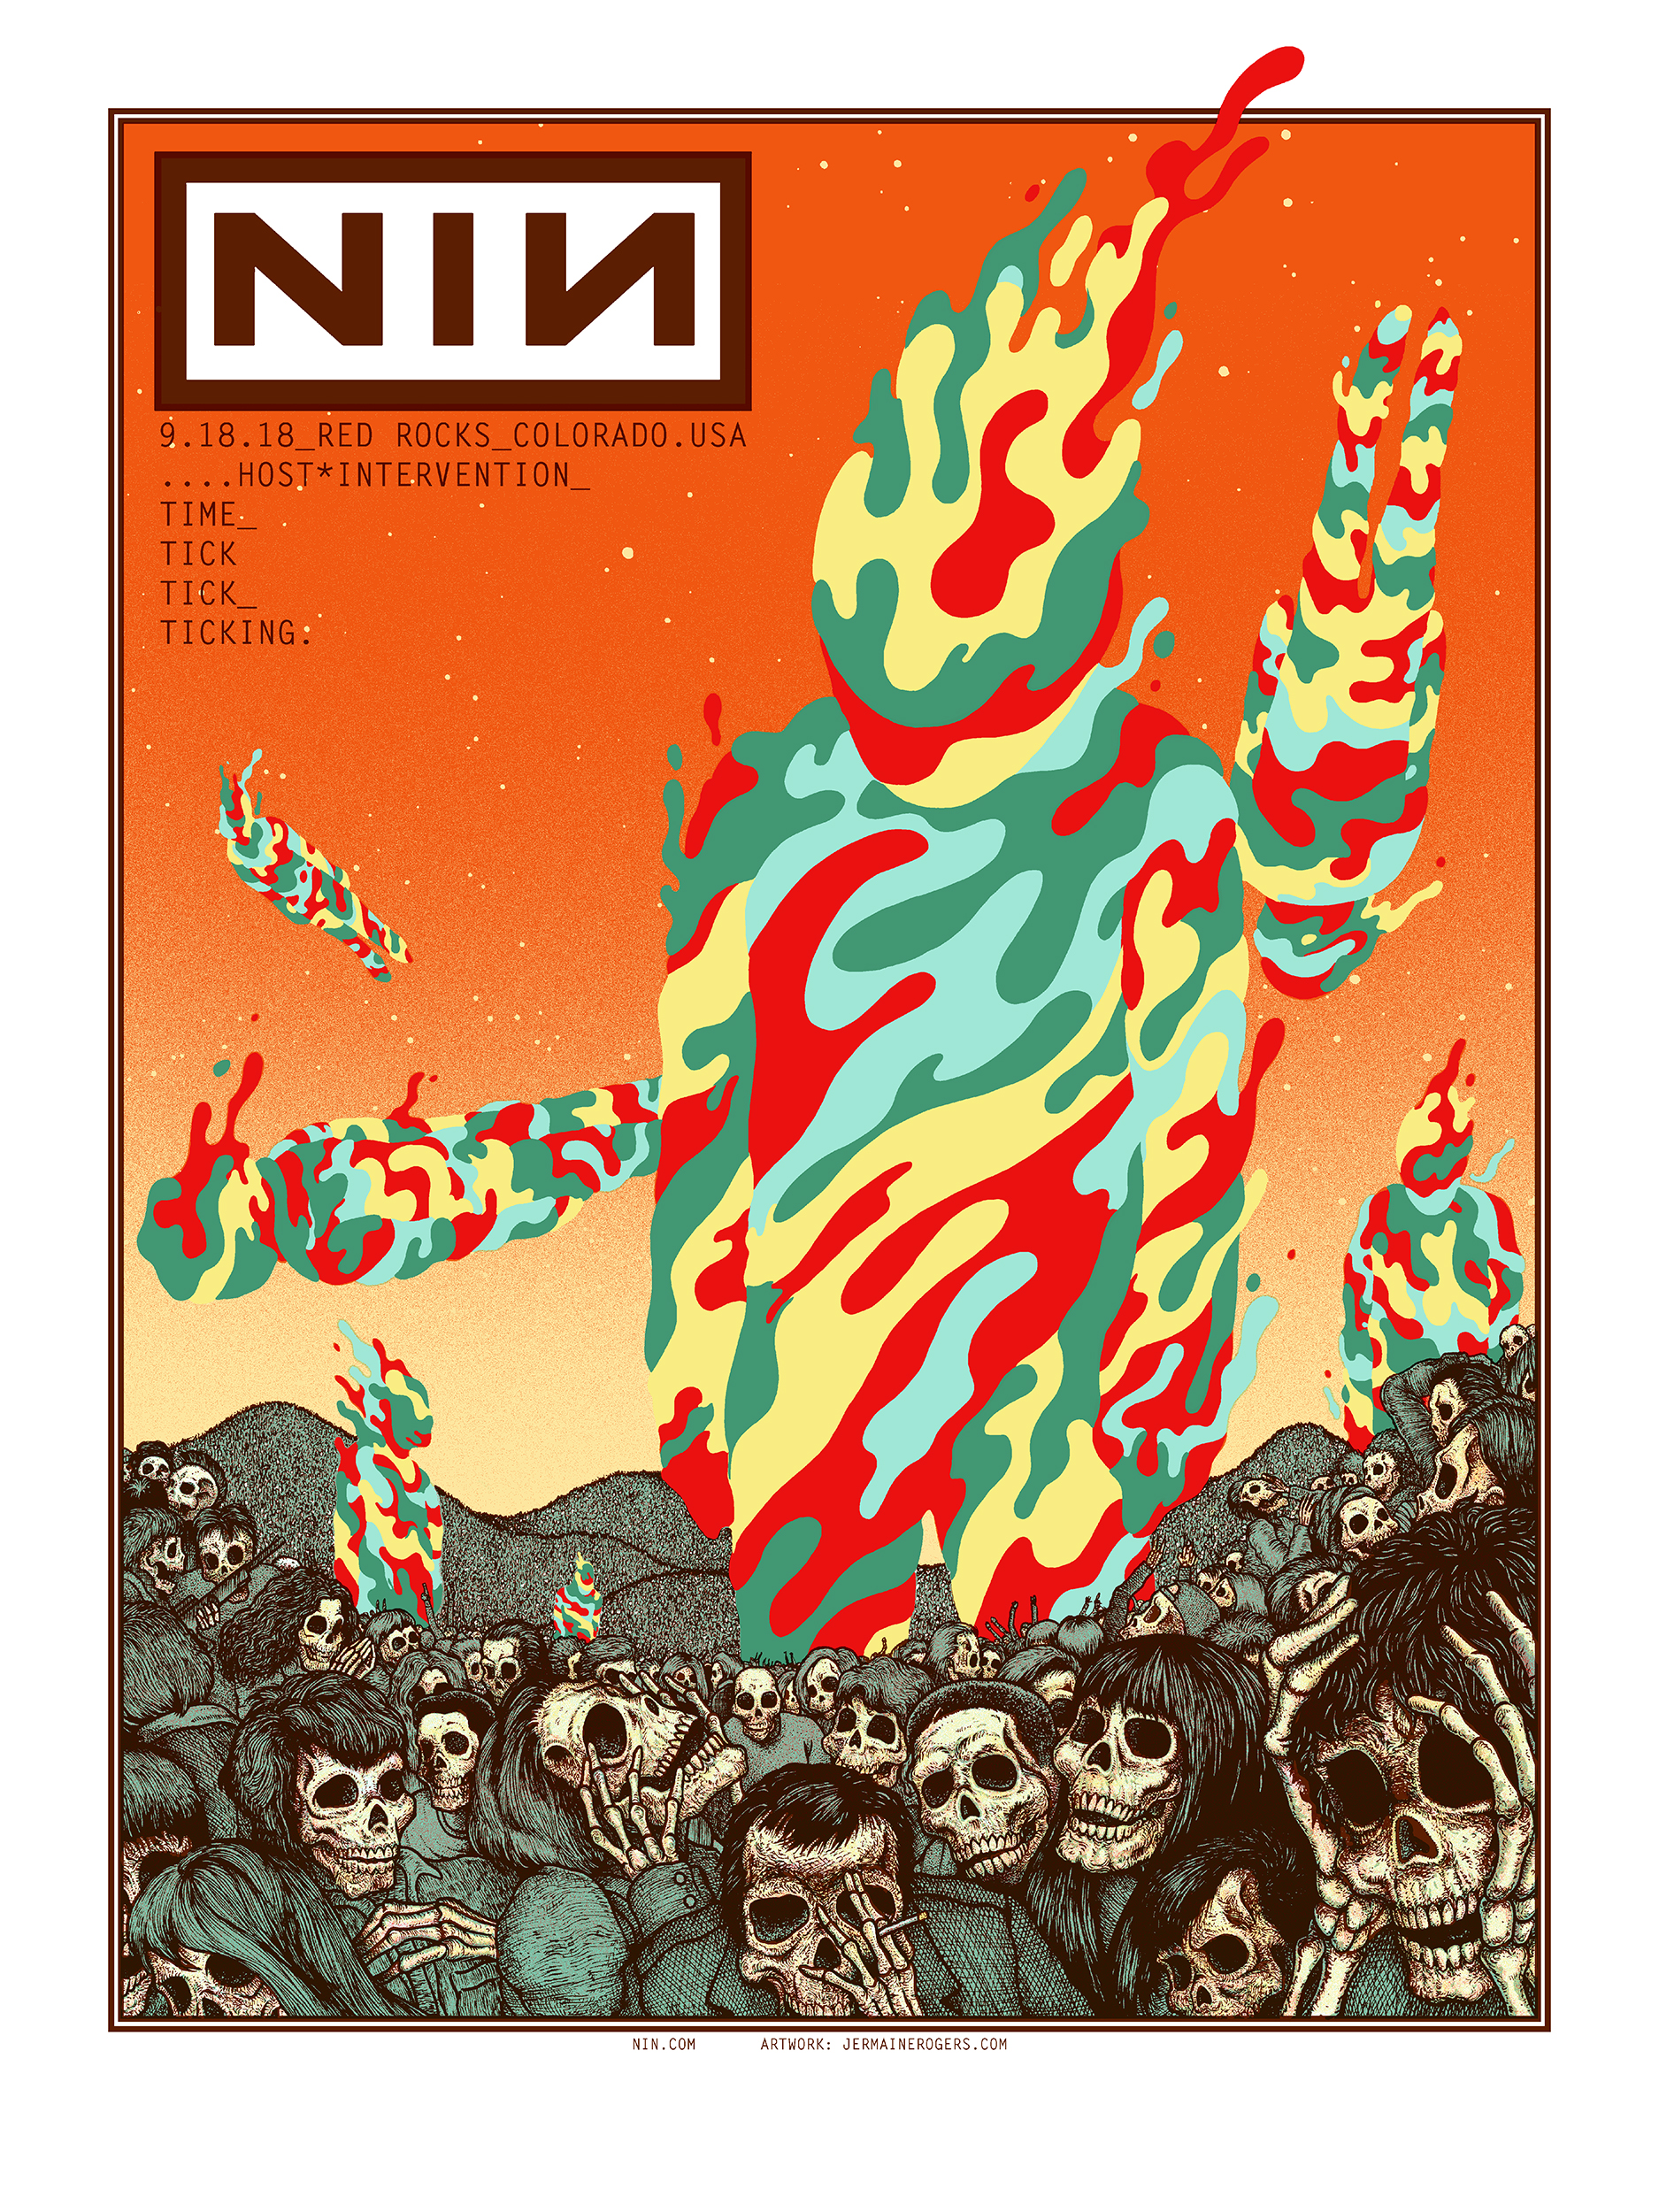 NEW - NineInchNails (Red Rocks 2018) - Artist Edition, SPARKLE FOIL, Lava Foil A/P's